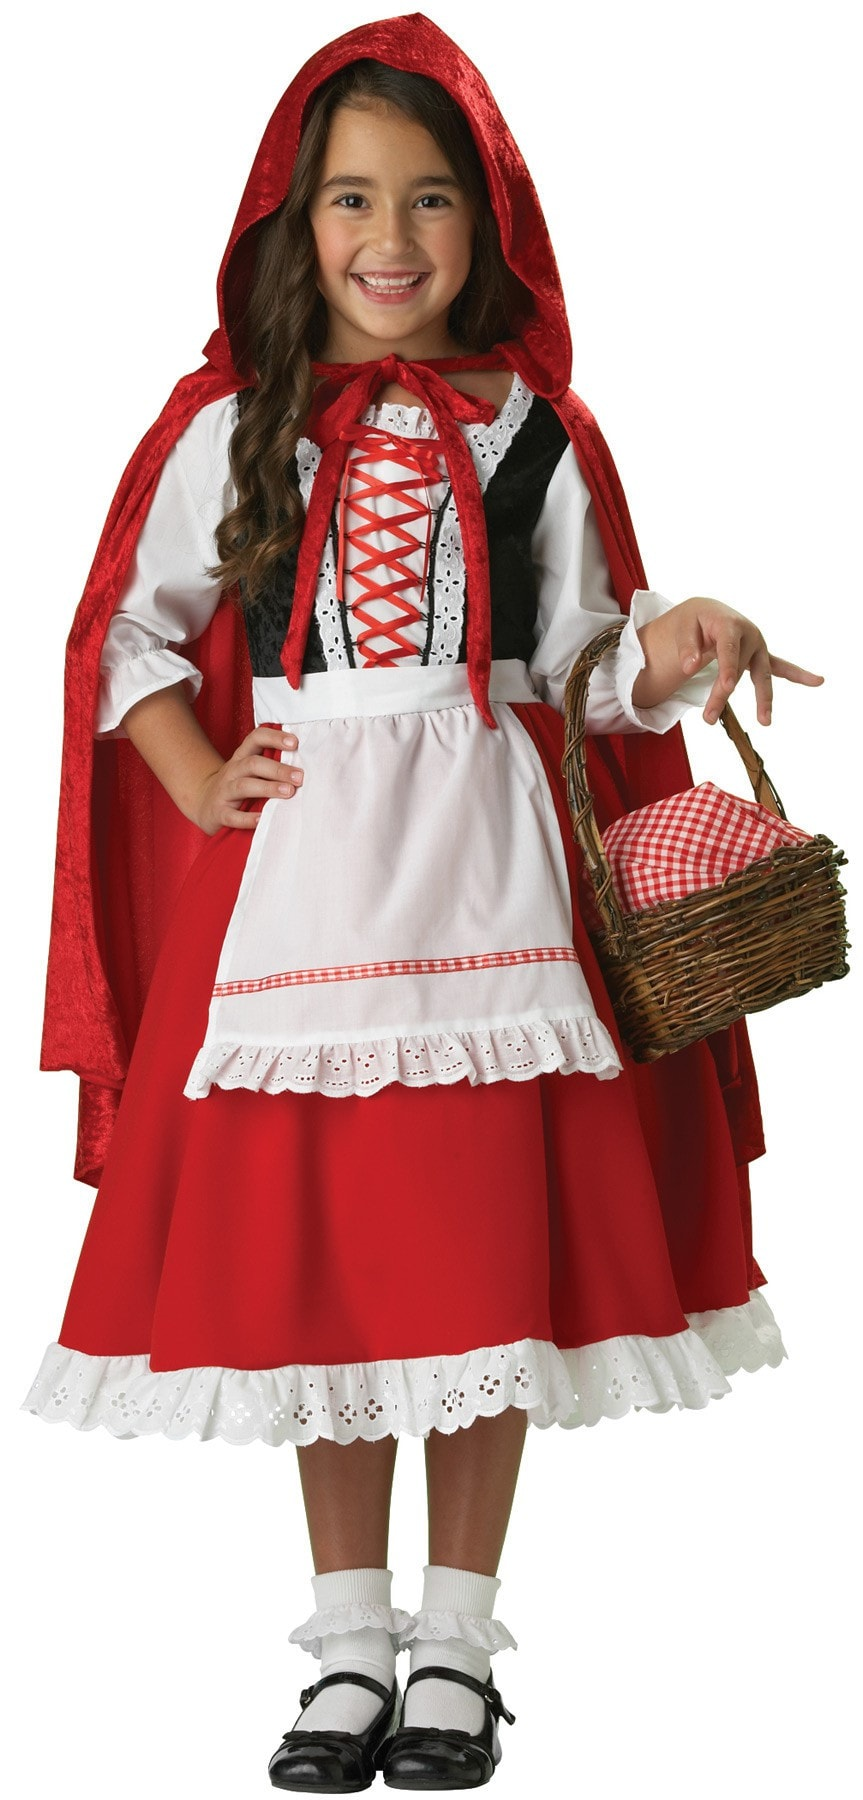 Morris Lttle Red Riding Hood Sze 8 - MaxWigs